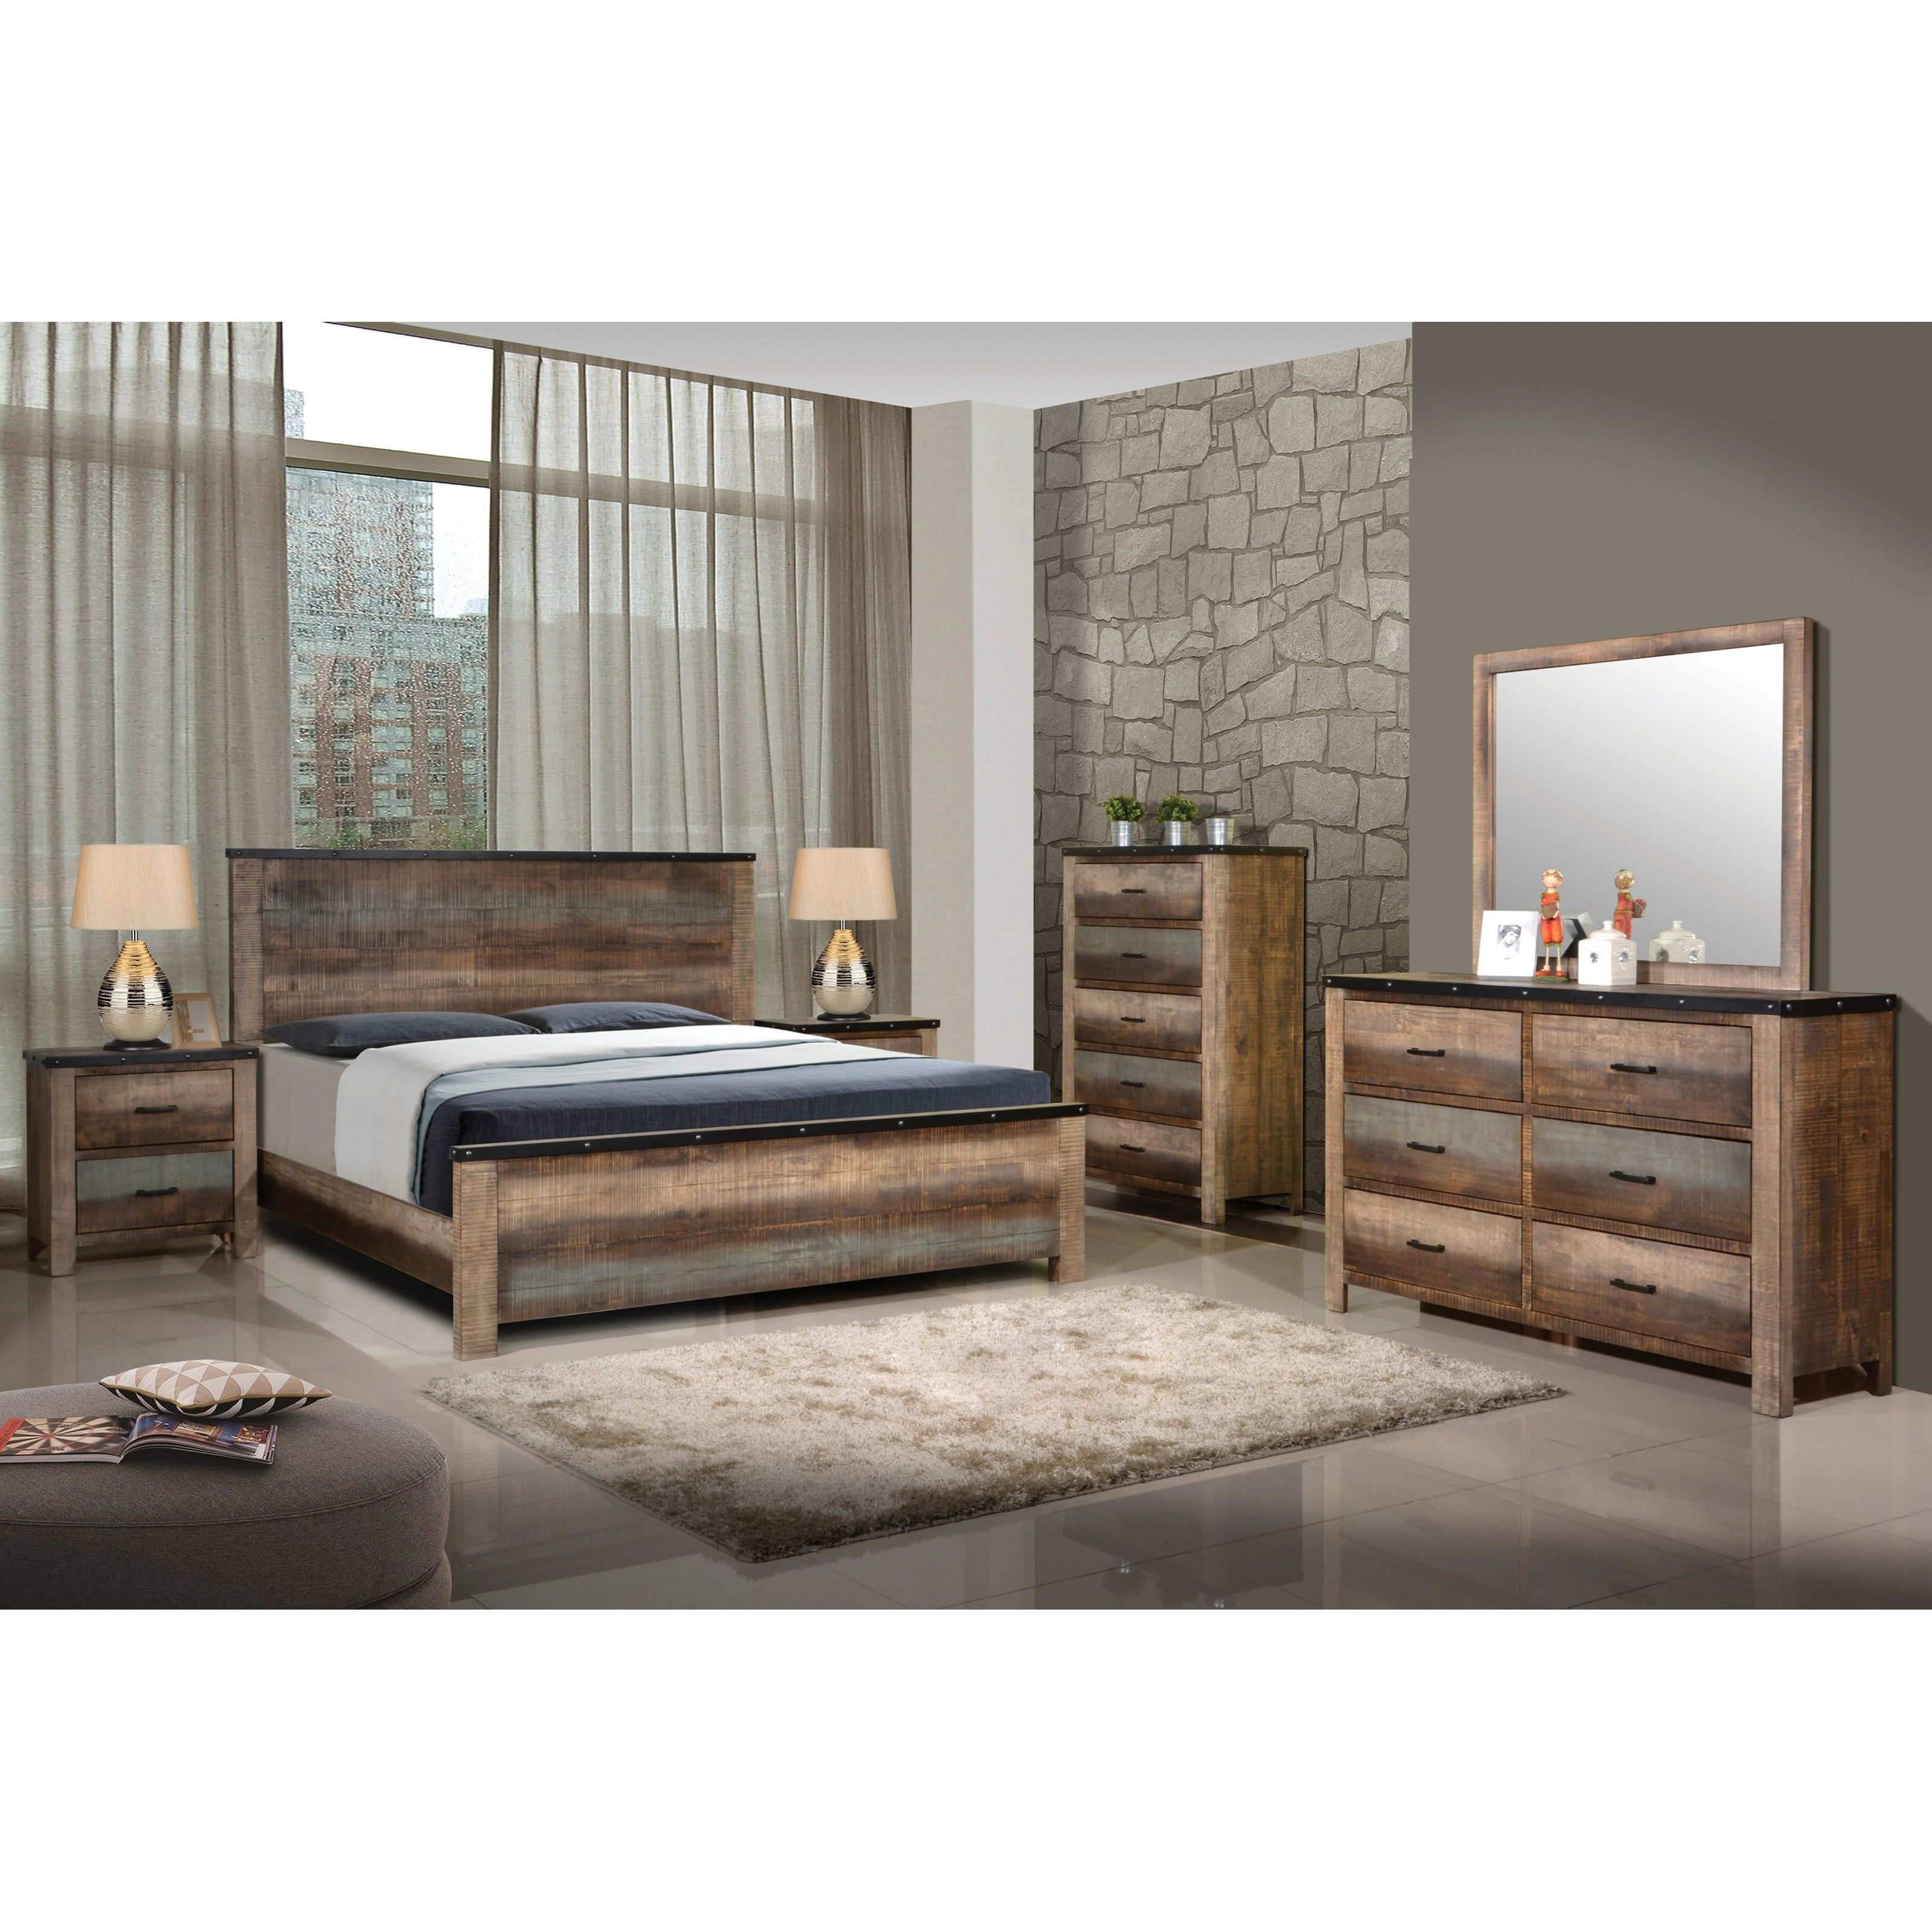 Sembene King Bedroom Group by Coaster at Northeast Factory Direct